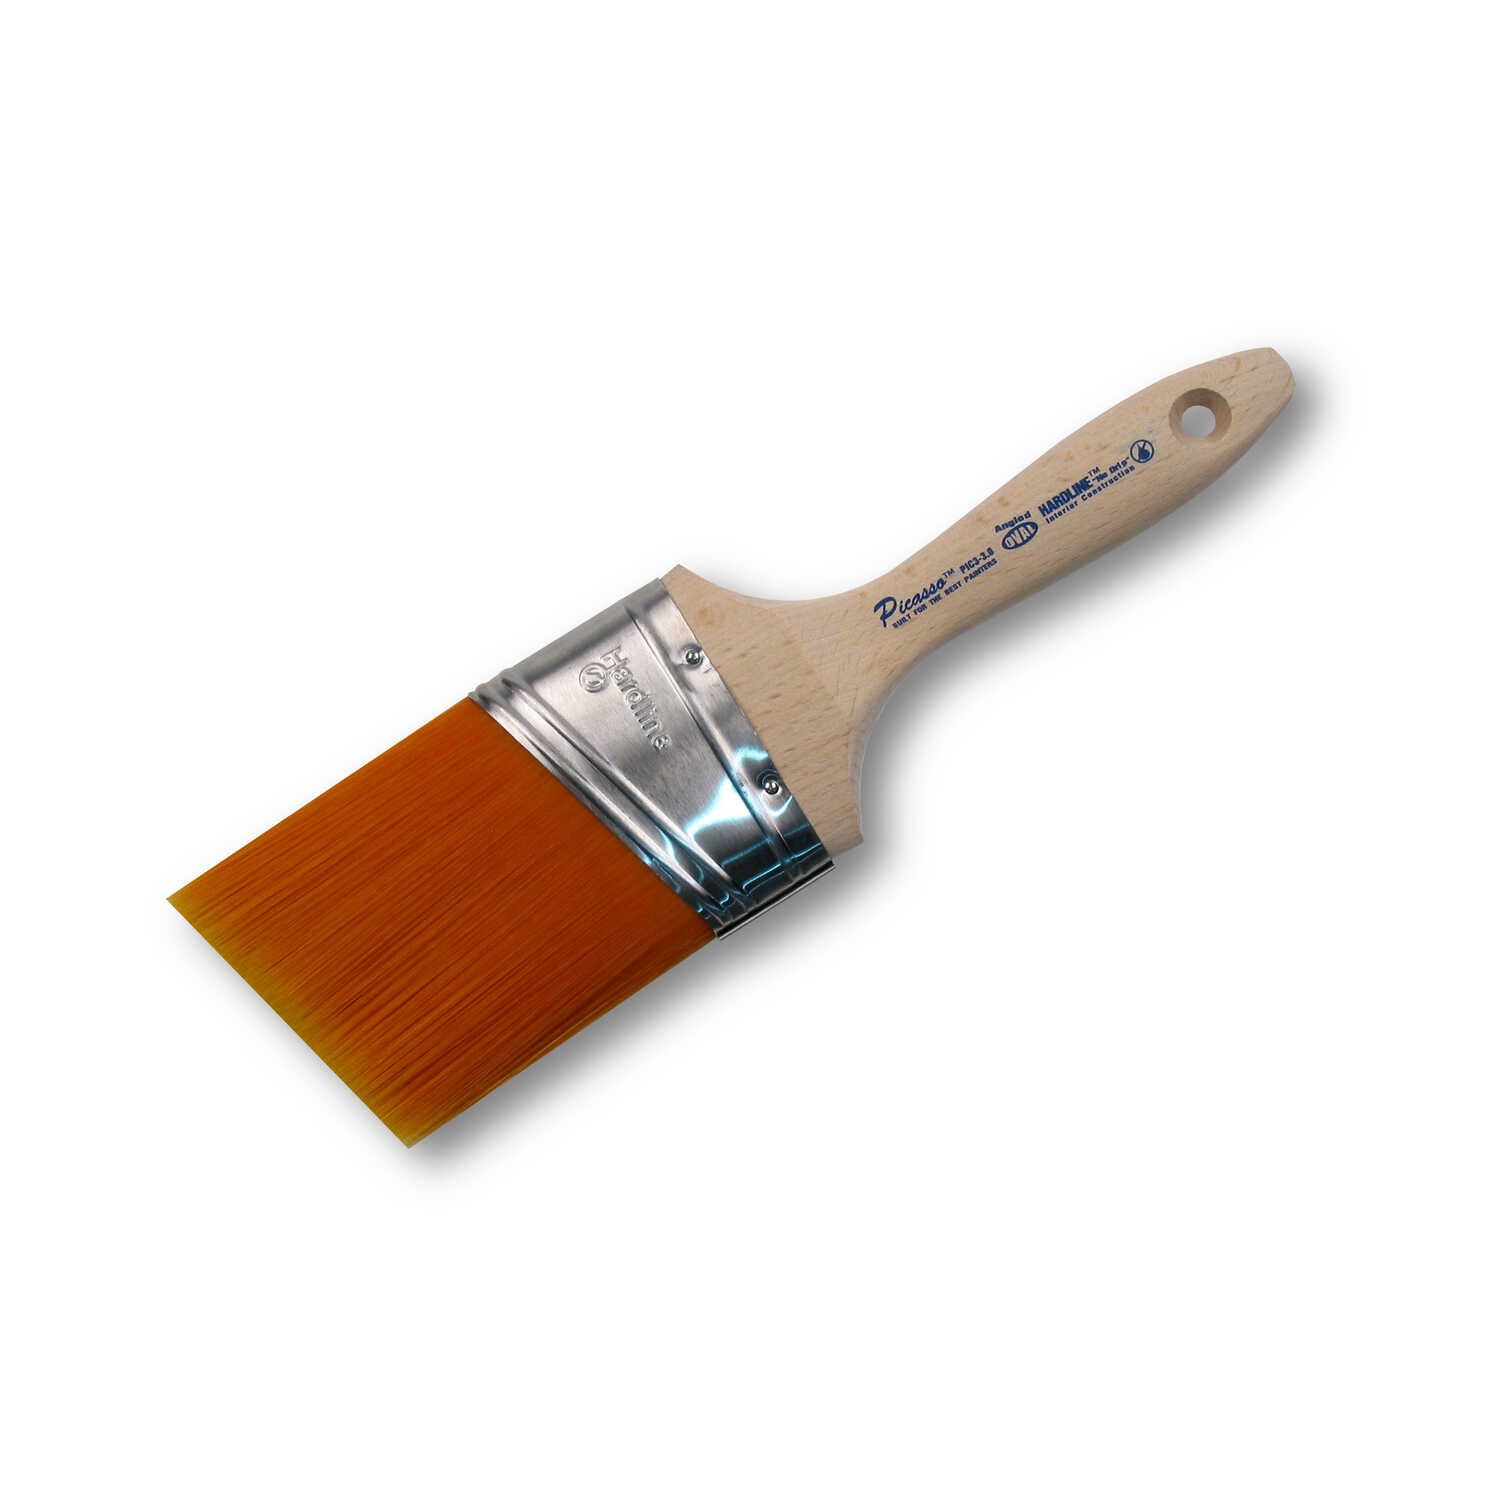 Proform  Picasso  3 in. W Soft  Angle  PBT  Paint Brush